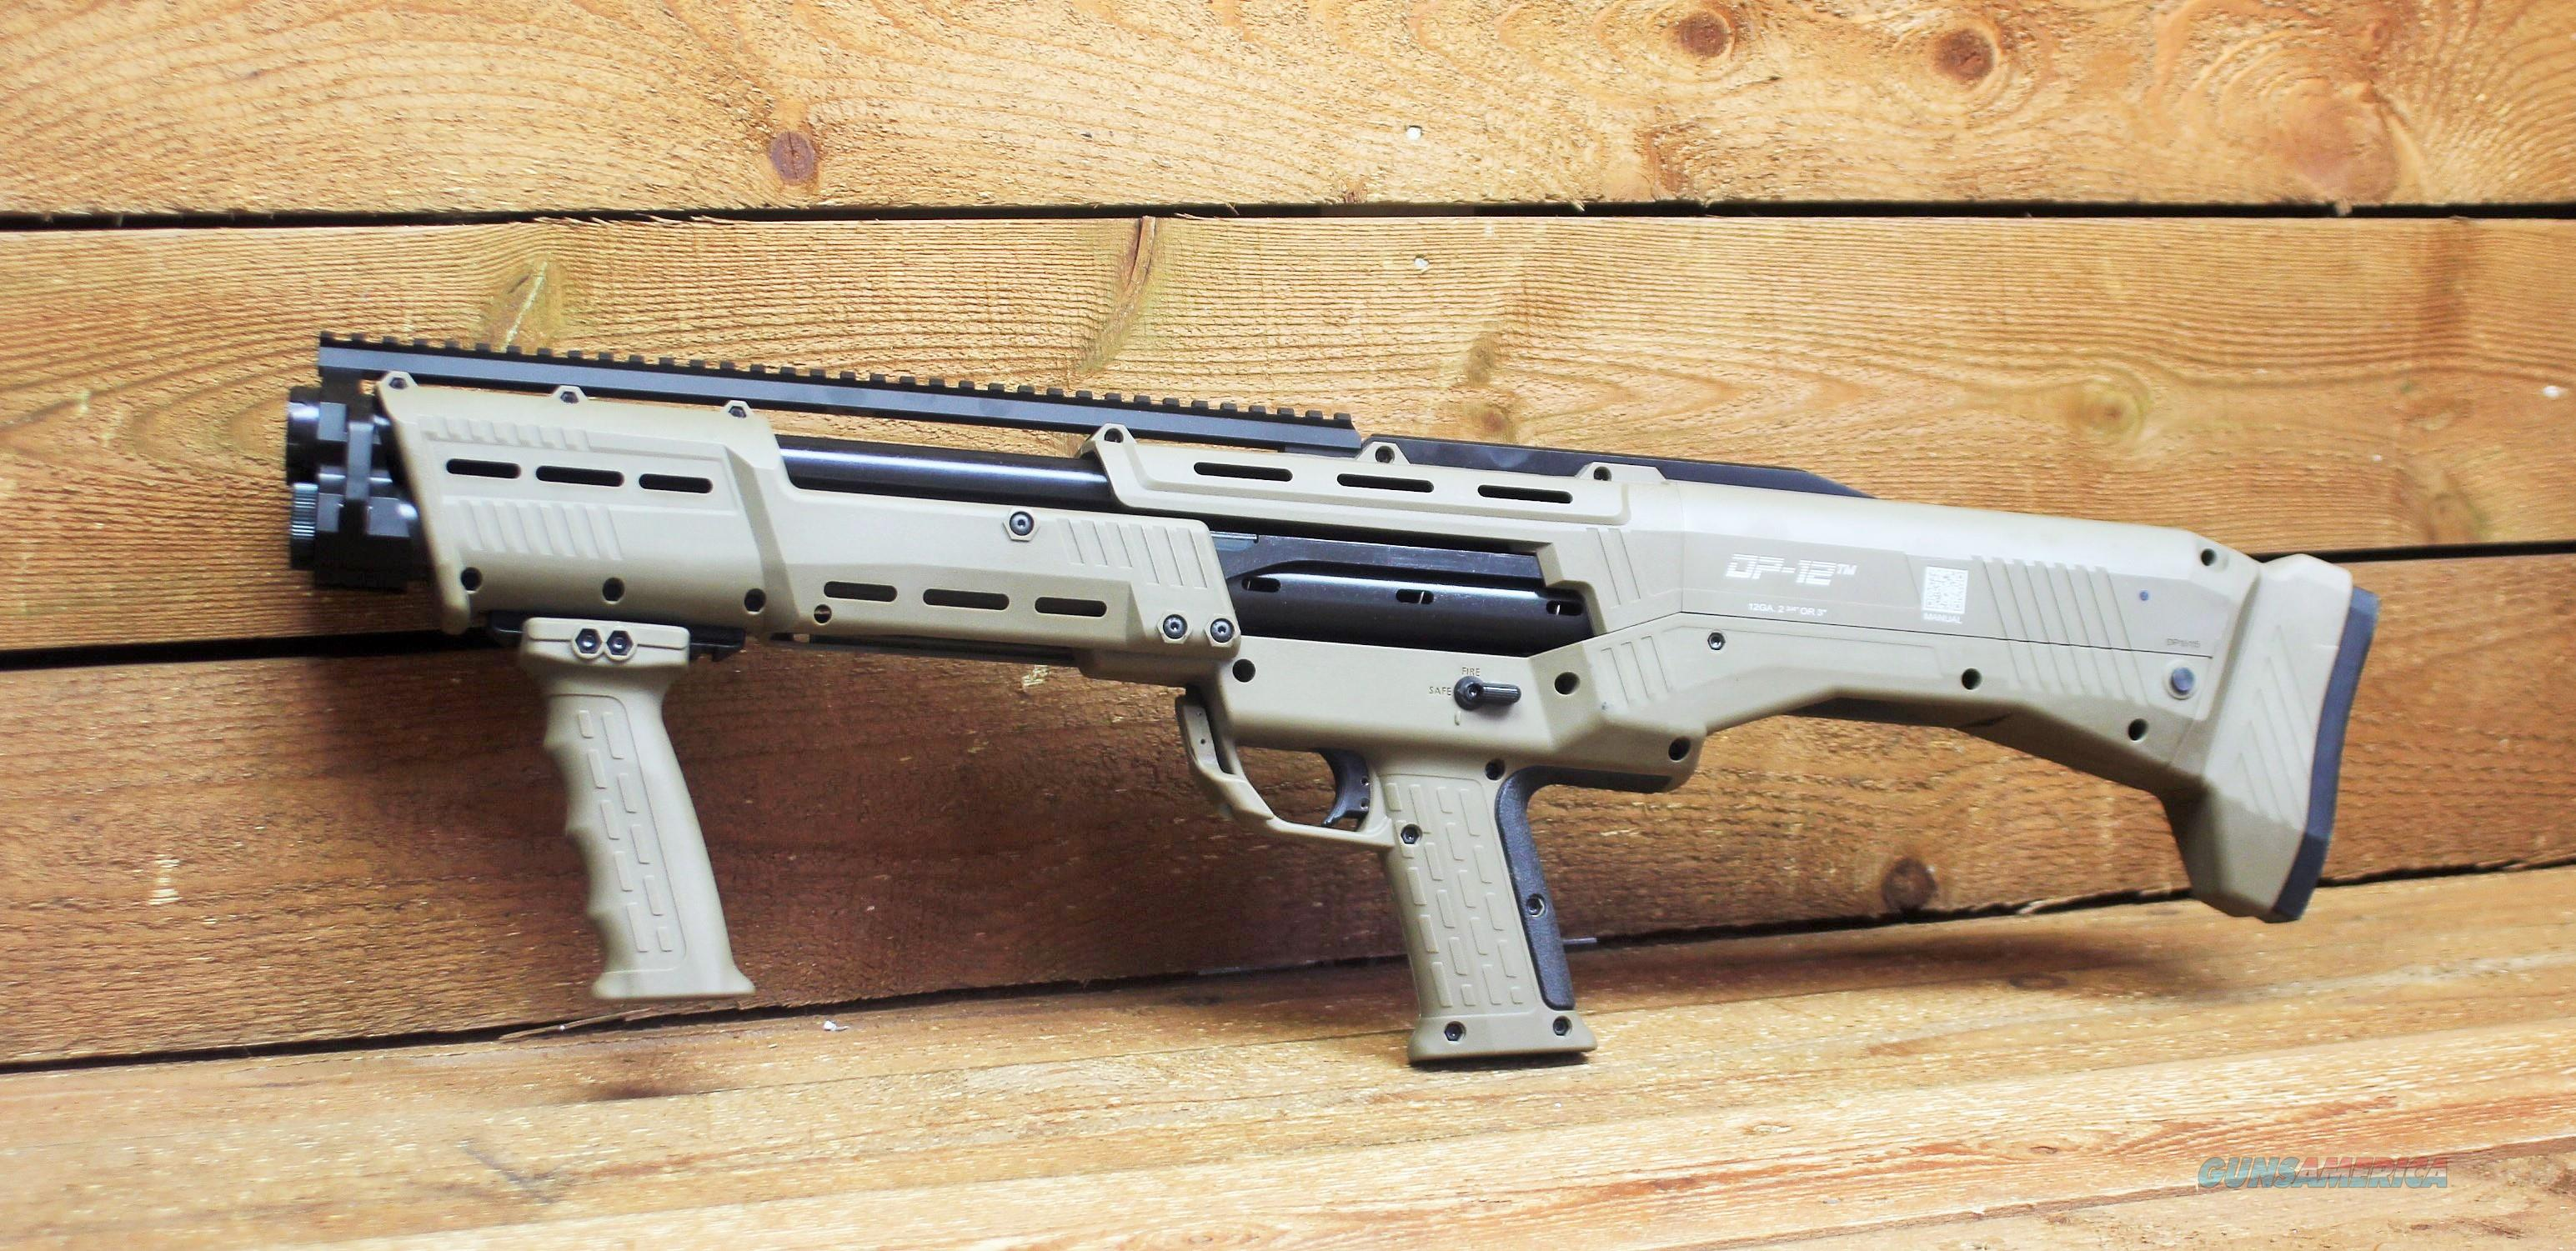 "EASY PAY $114 LAYAWAY  Standard Mfg DP12FDE  DP-12 12GA PUMP FDE  FLAT DARK EARTH   MOE rails foregrip  Thermal coated receiver 12 ga Fires 2 3/4 or 3"" shells Ambidextrous safety   Guns > Shotguns > Military Misc. Shotguns US"